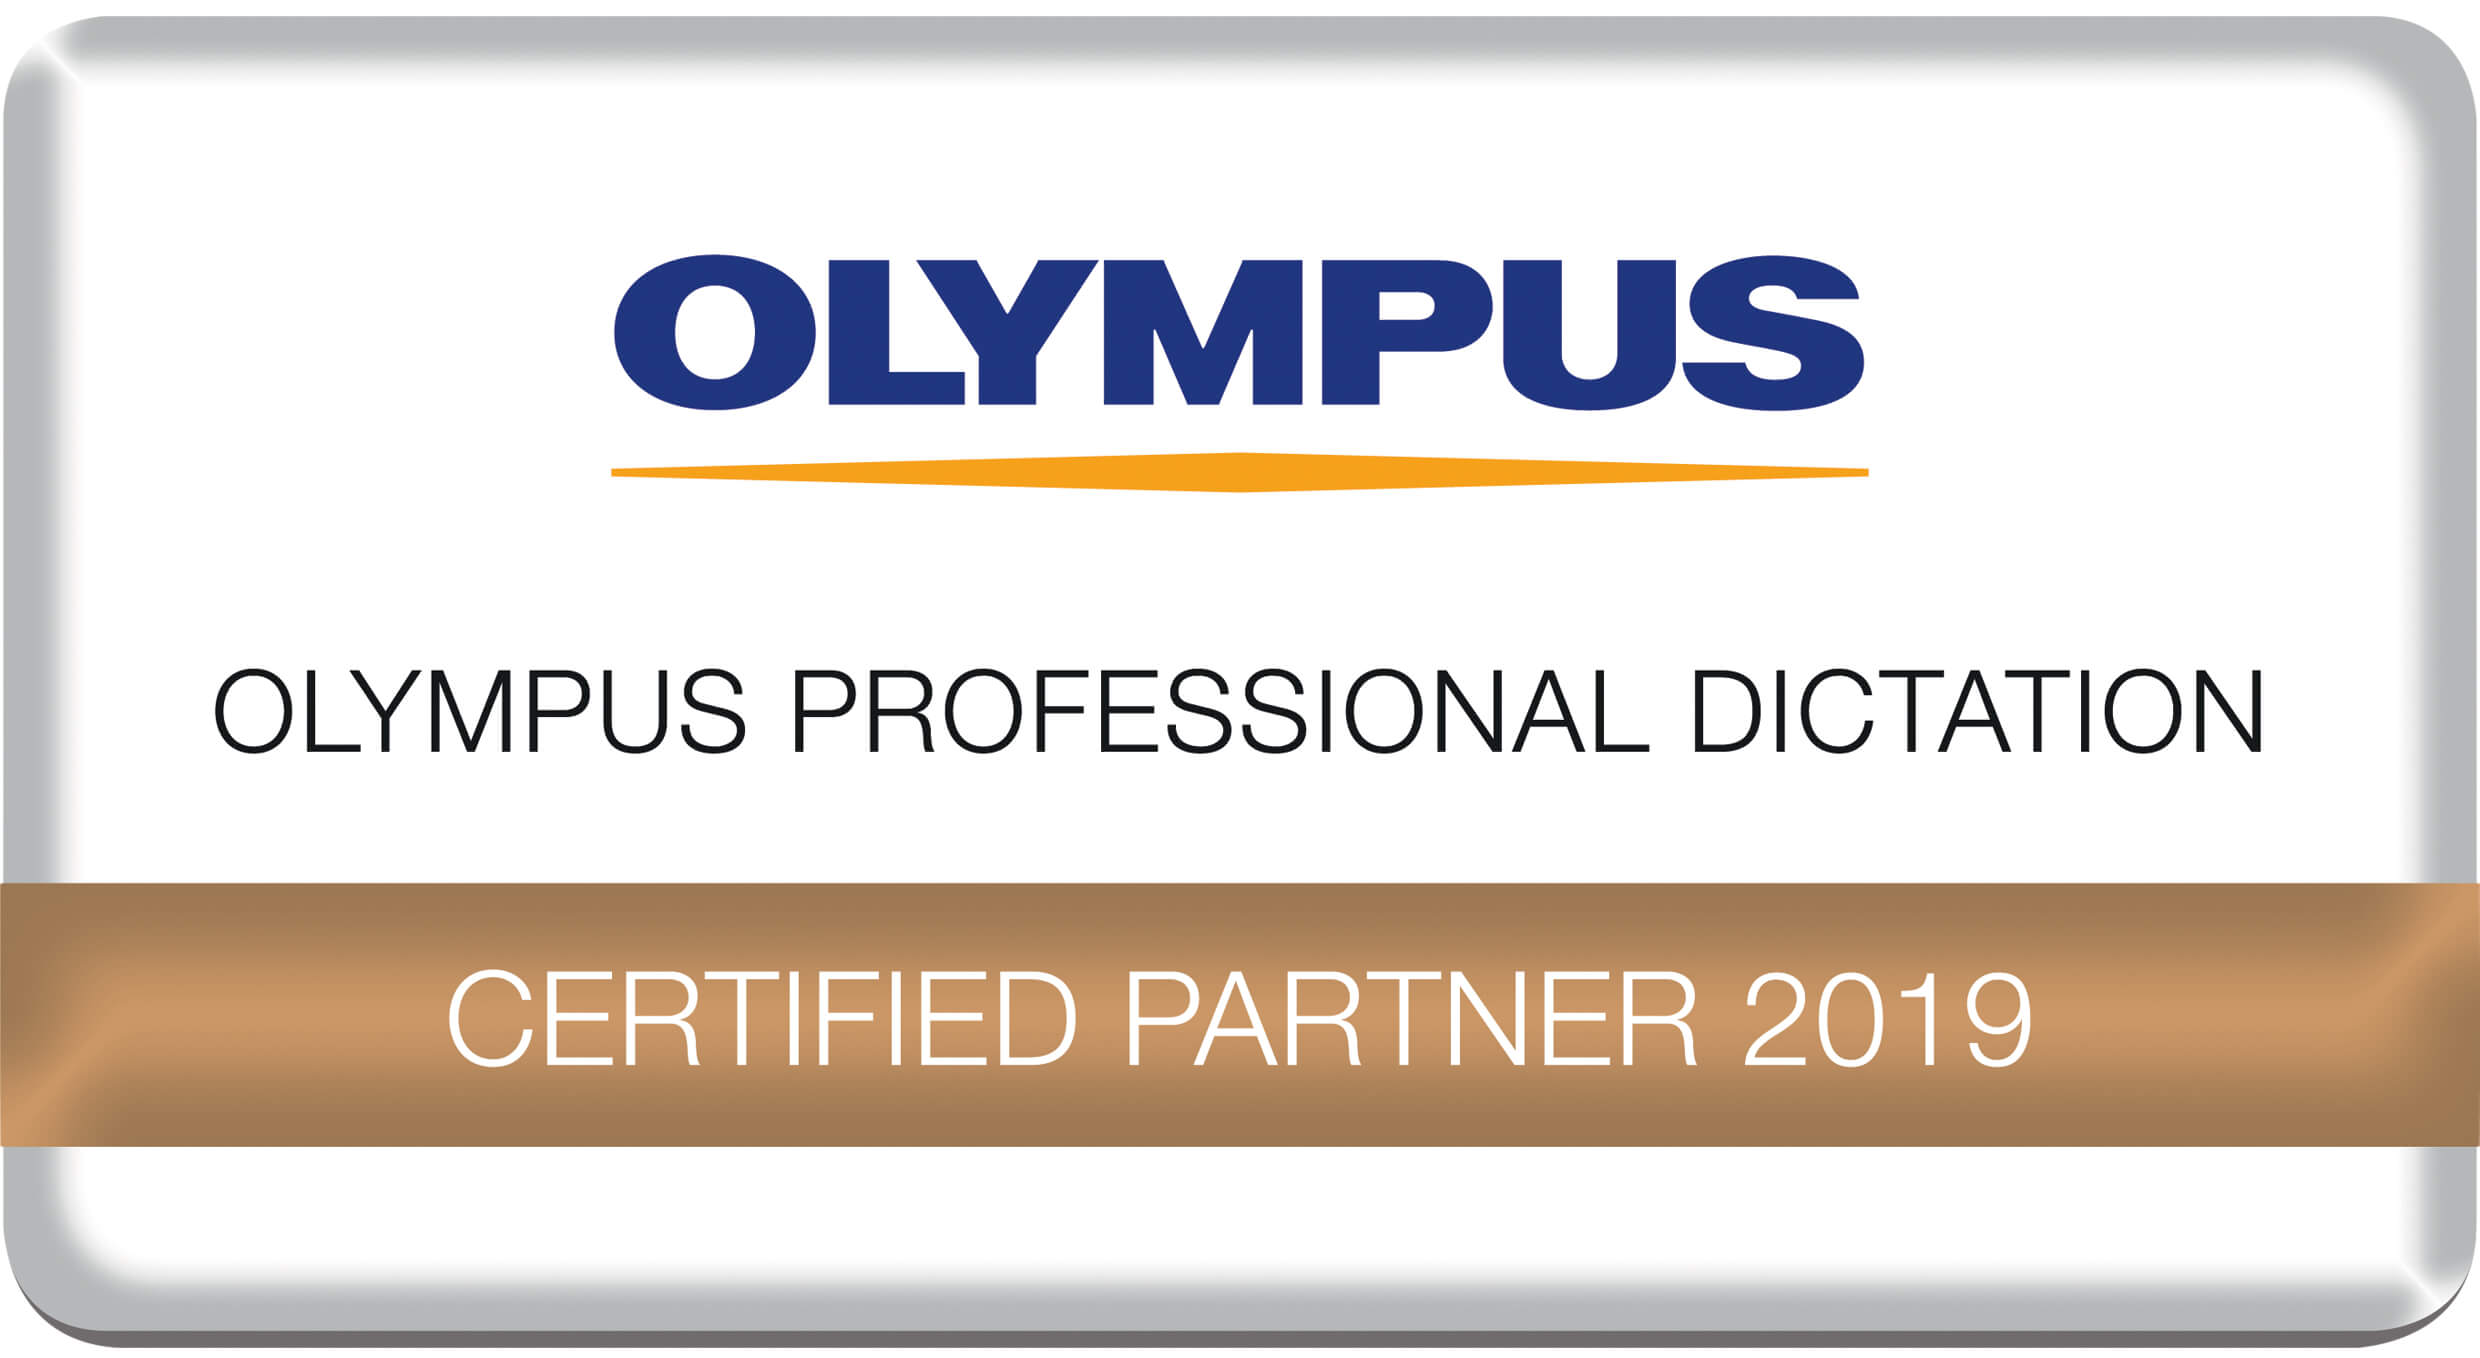 Olympus - Professional Dictation - Certified Partner 2019